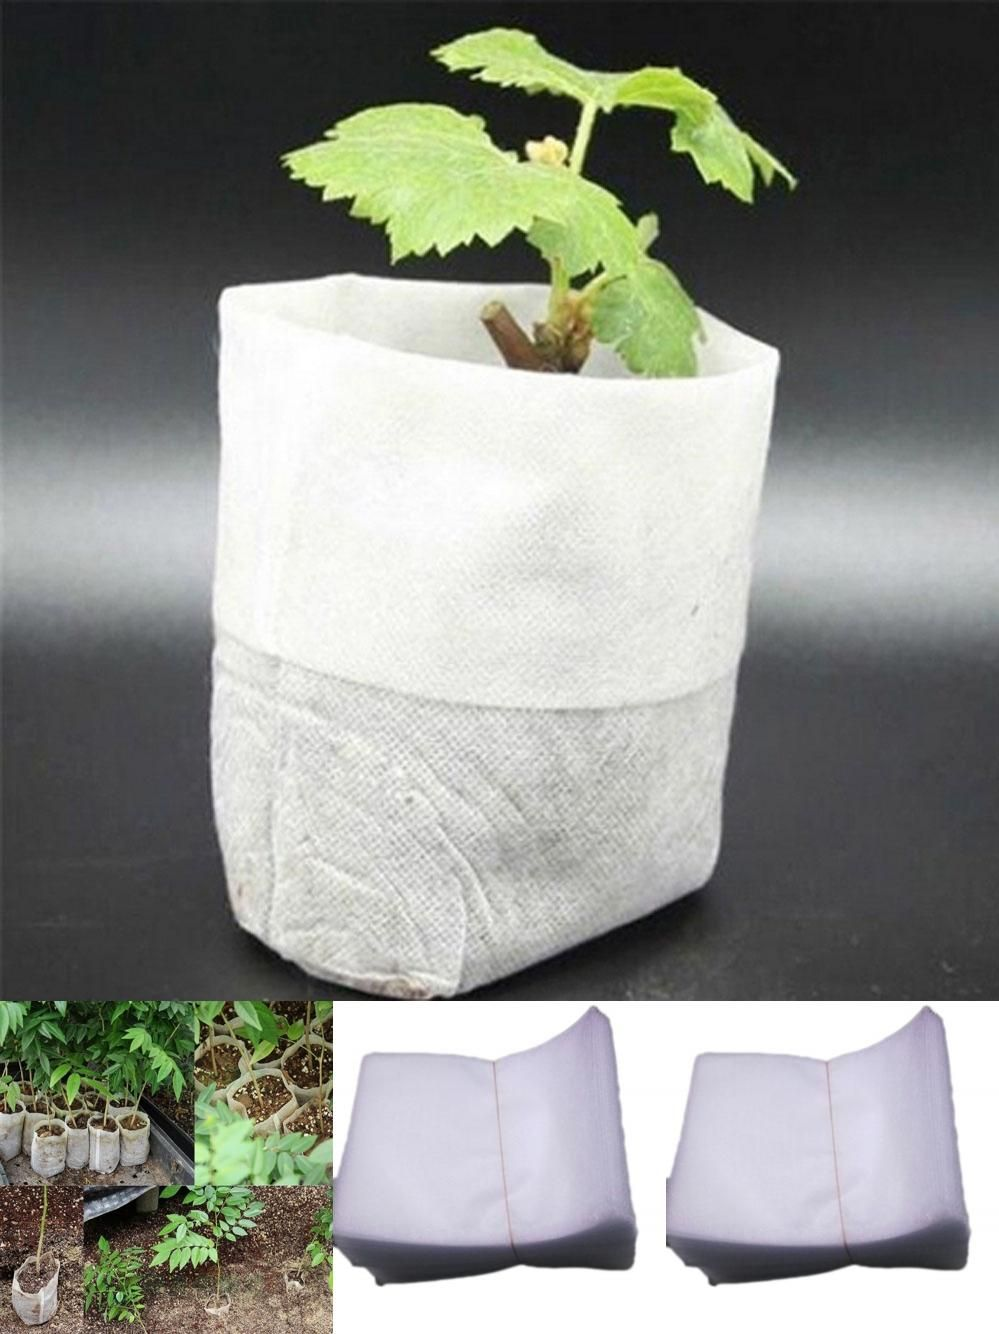 Visit to buy 100pcspack garden supplies environmental protection cheap nursery pots seedling raising bags buy quality fabric garden pots directly from china garden supplies suppliers 100 pcs nursery pots workwithnaturefo